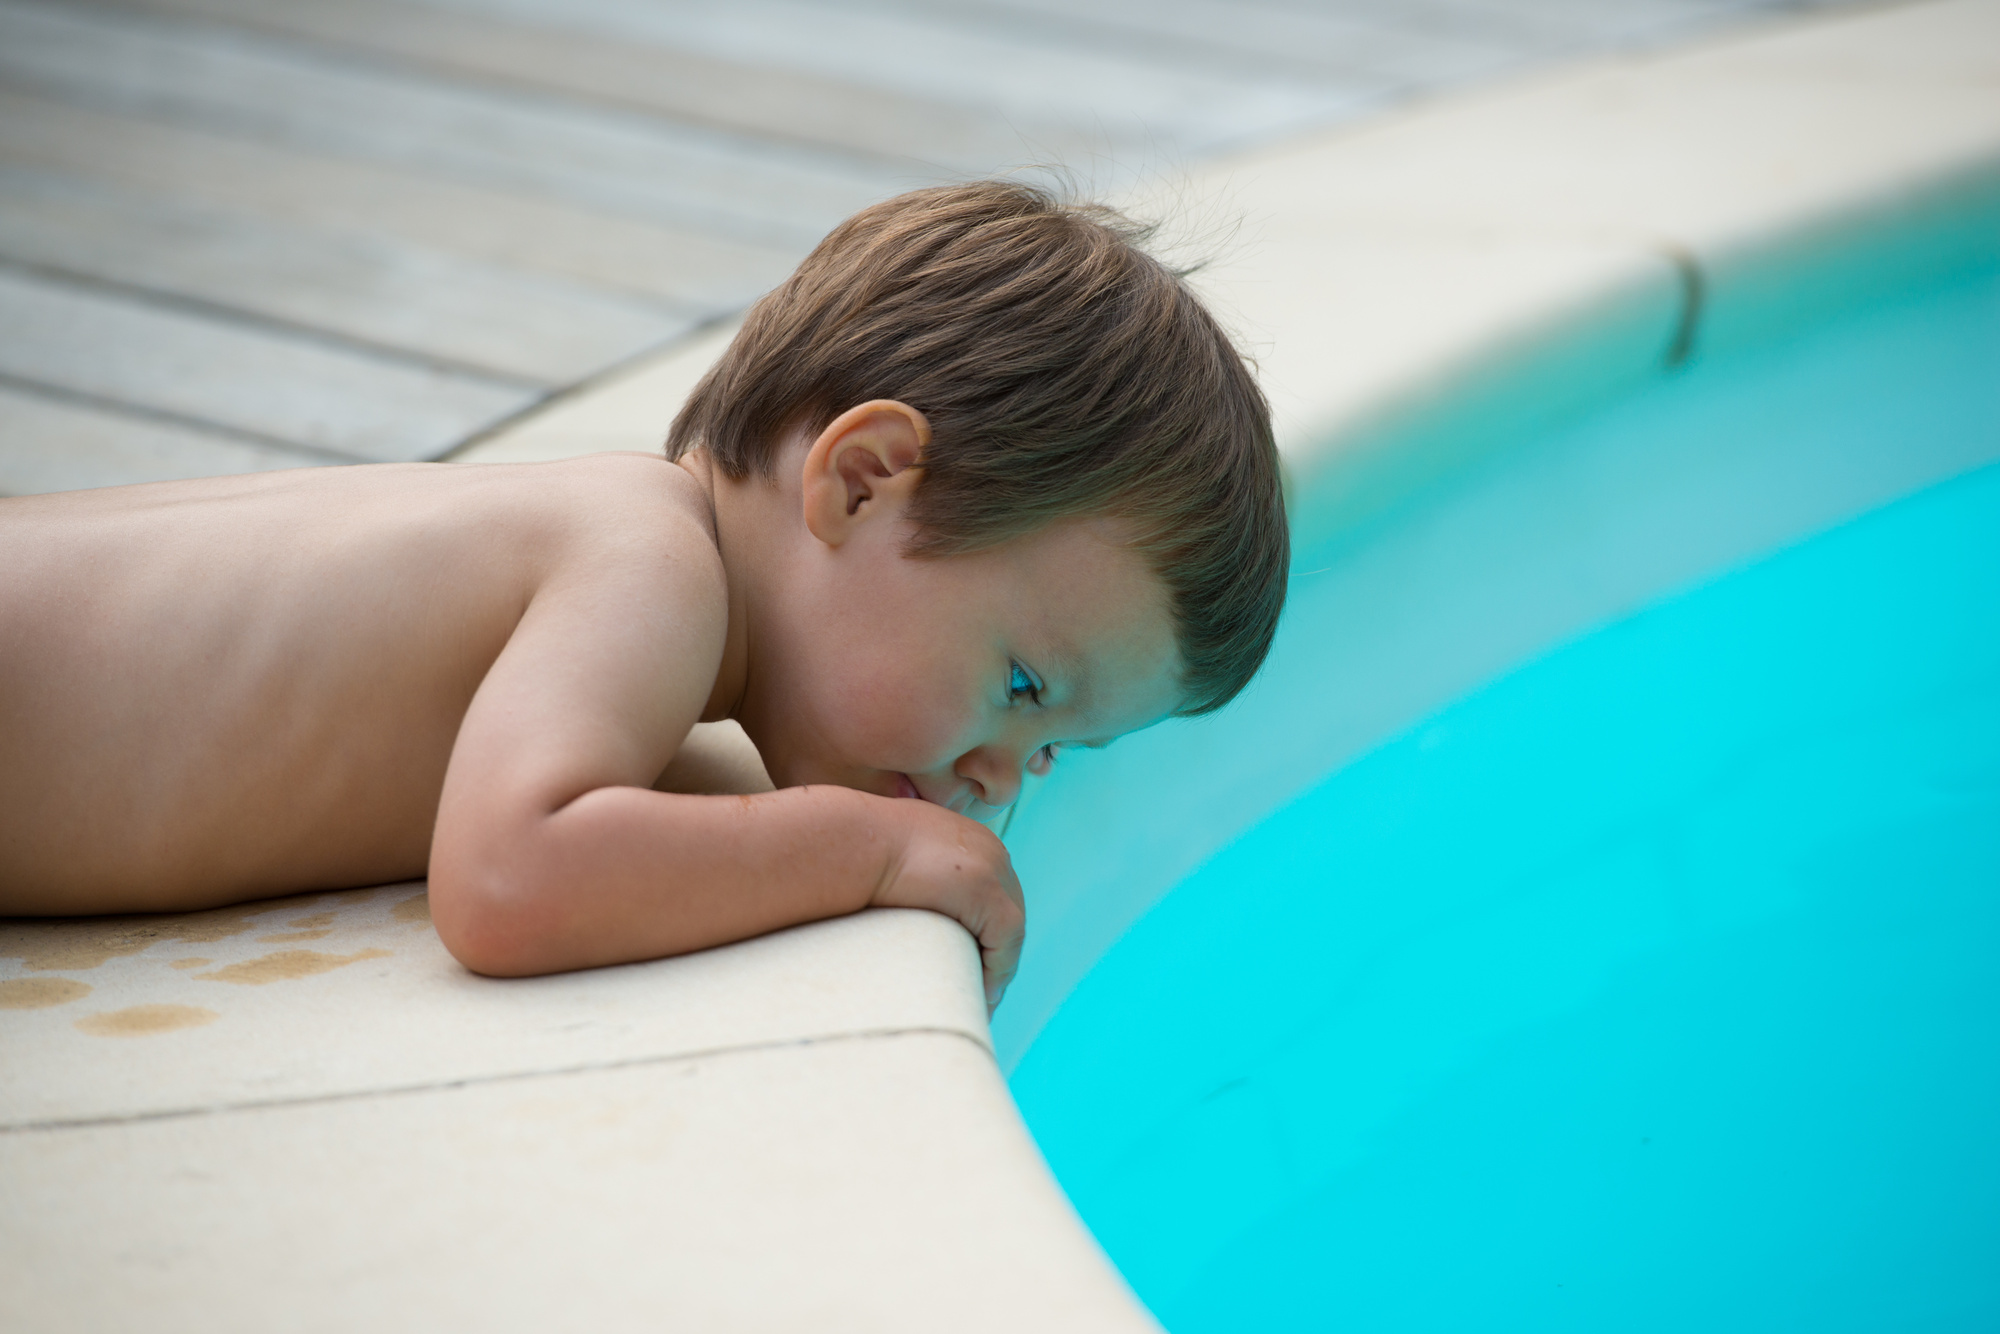 Pool Party Safety: How to Keep Your Pool Safe and Still Have Fun